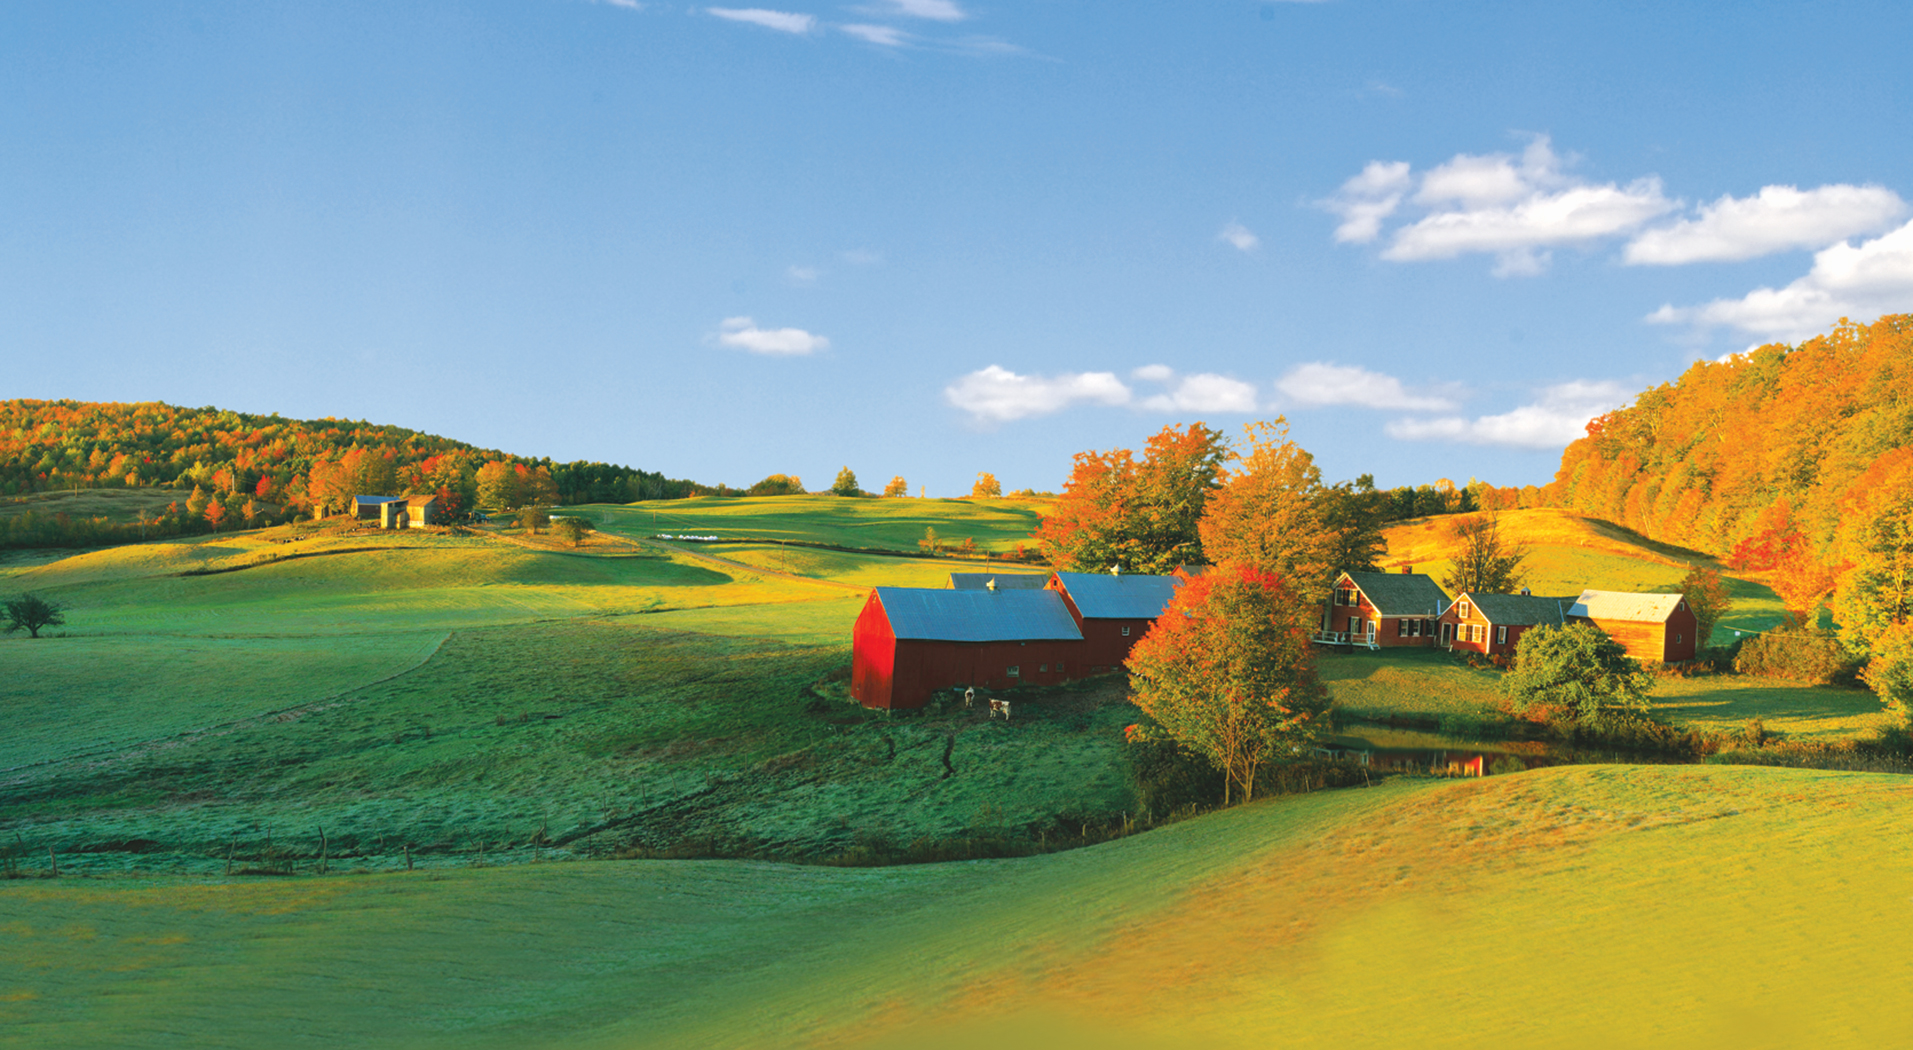 farm scene artwork with fields, hills and trees